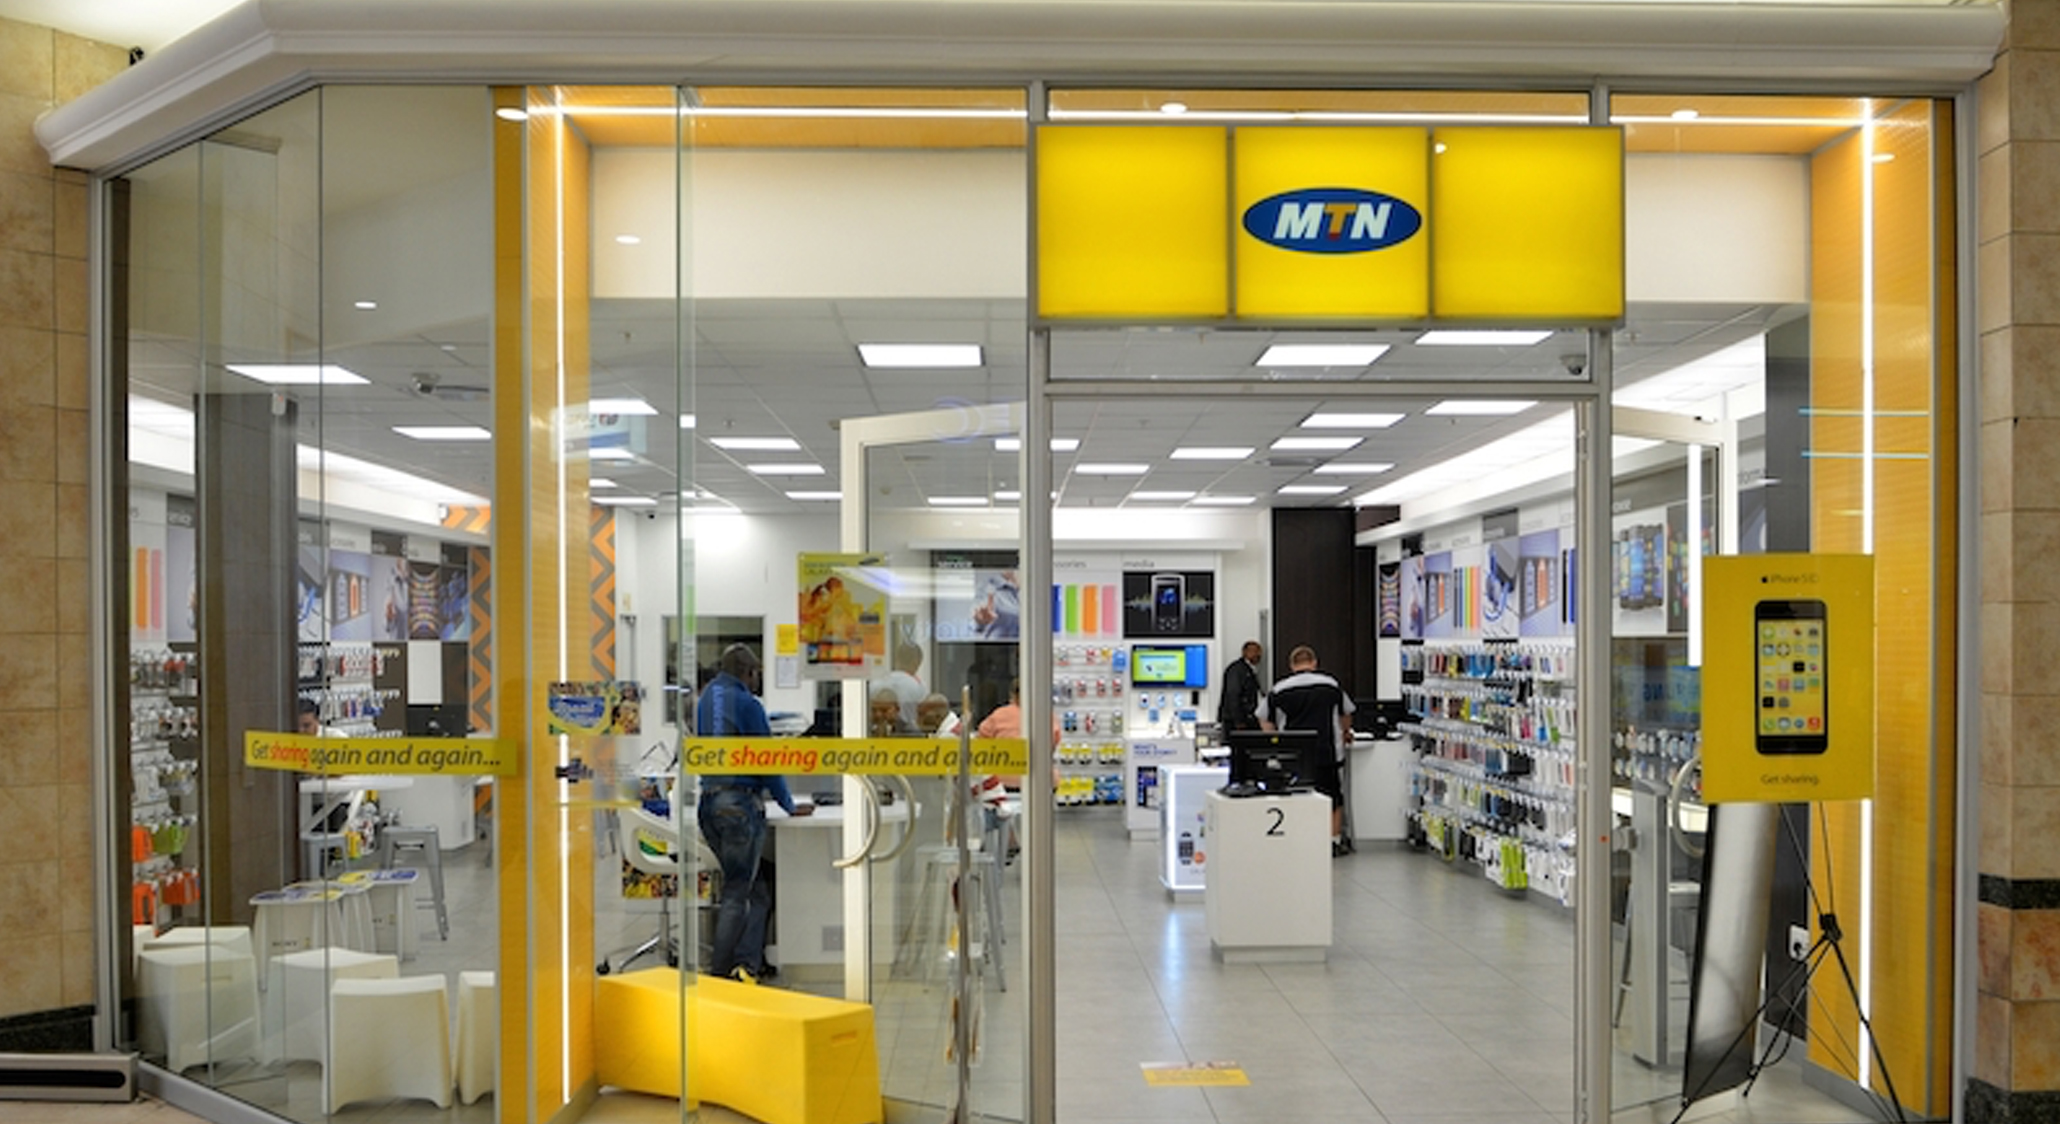 MTN Group CEO To Step Down In 2021